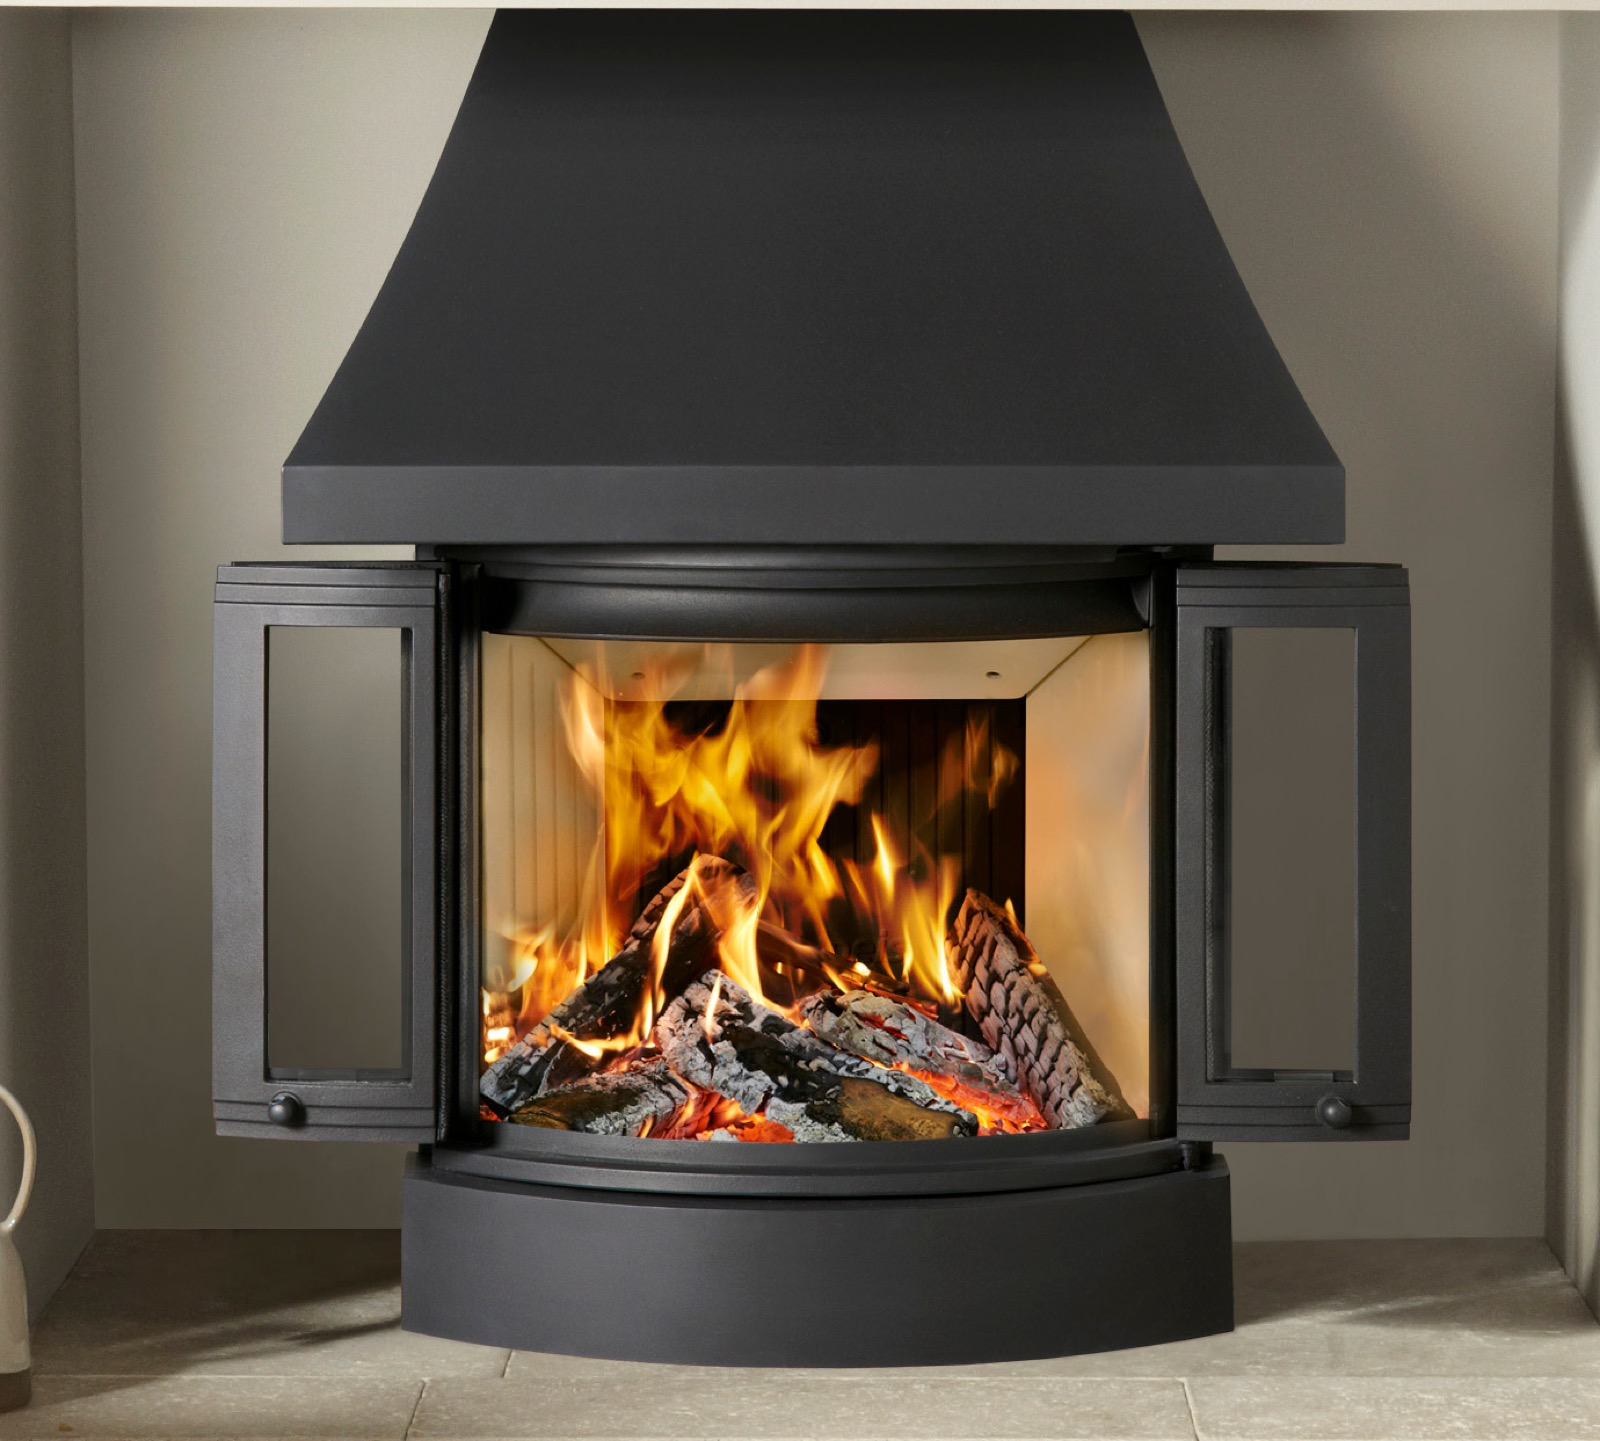 Canopy For Nordpeis Ni 25 Wood Burning Insert Fire